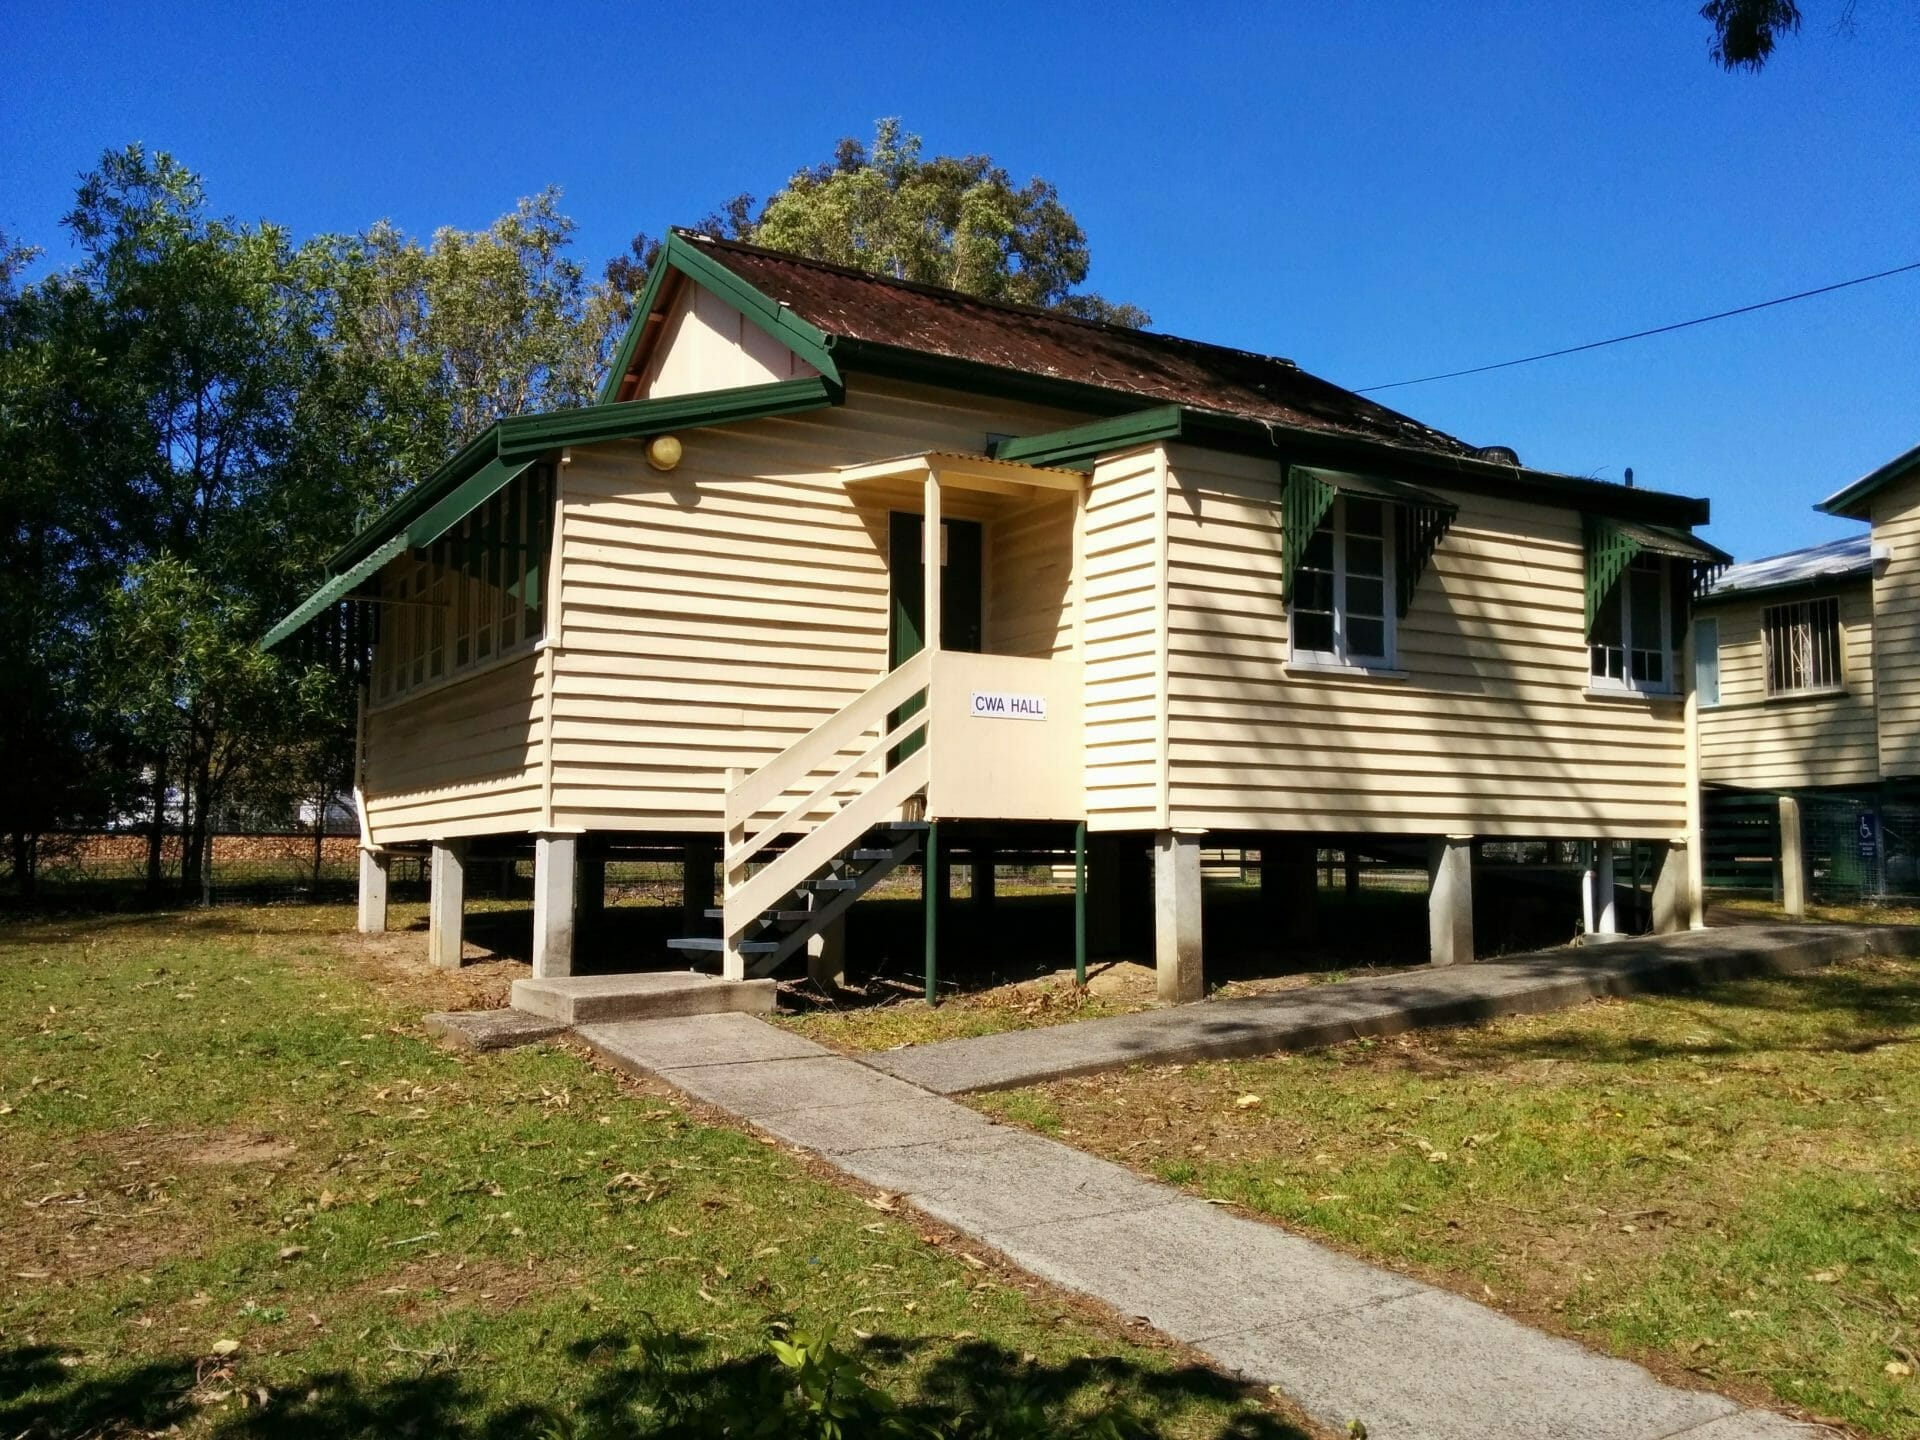 CWA Landsborough alongside Morris House in Landsborough